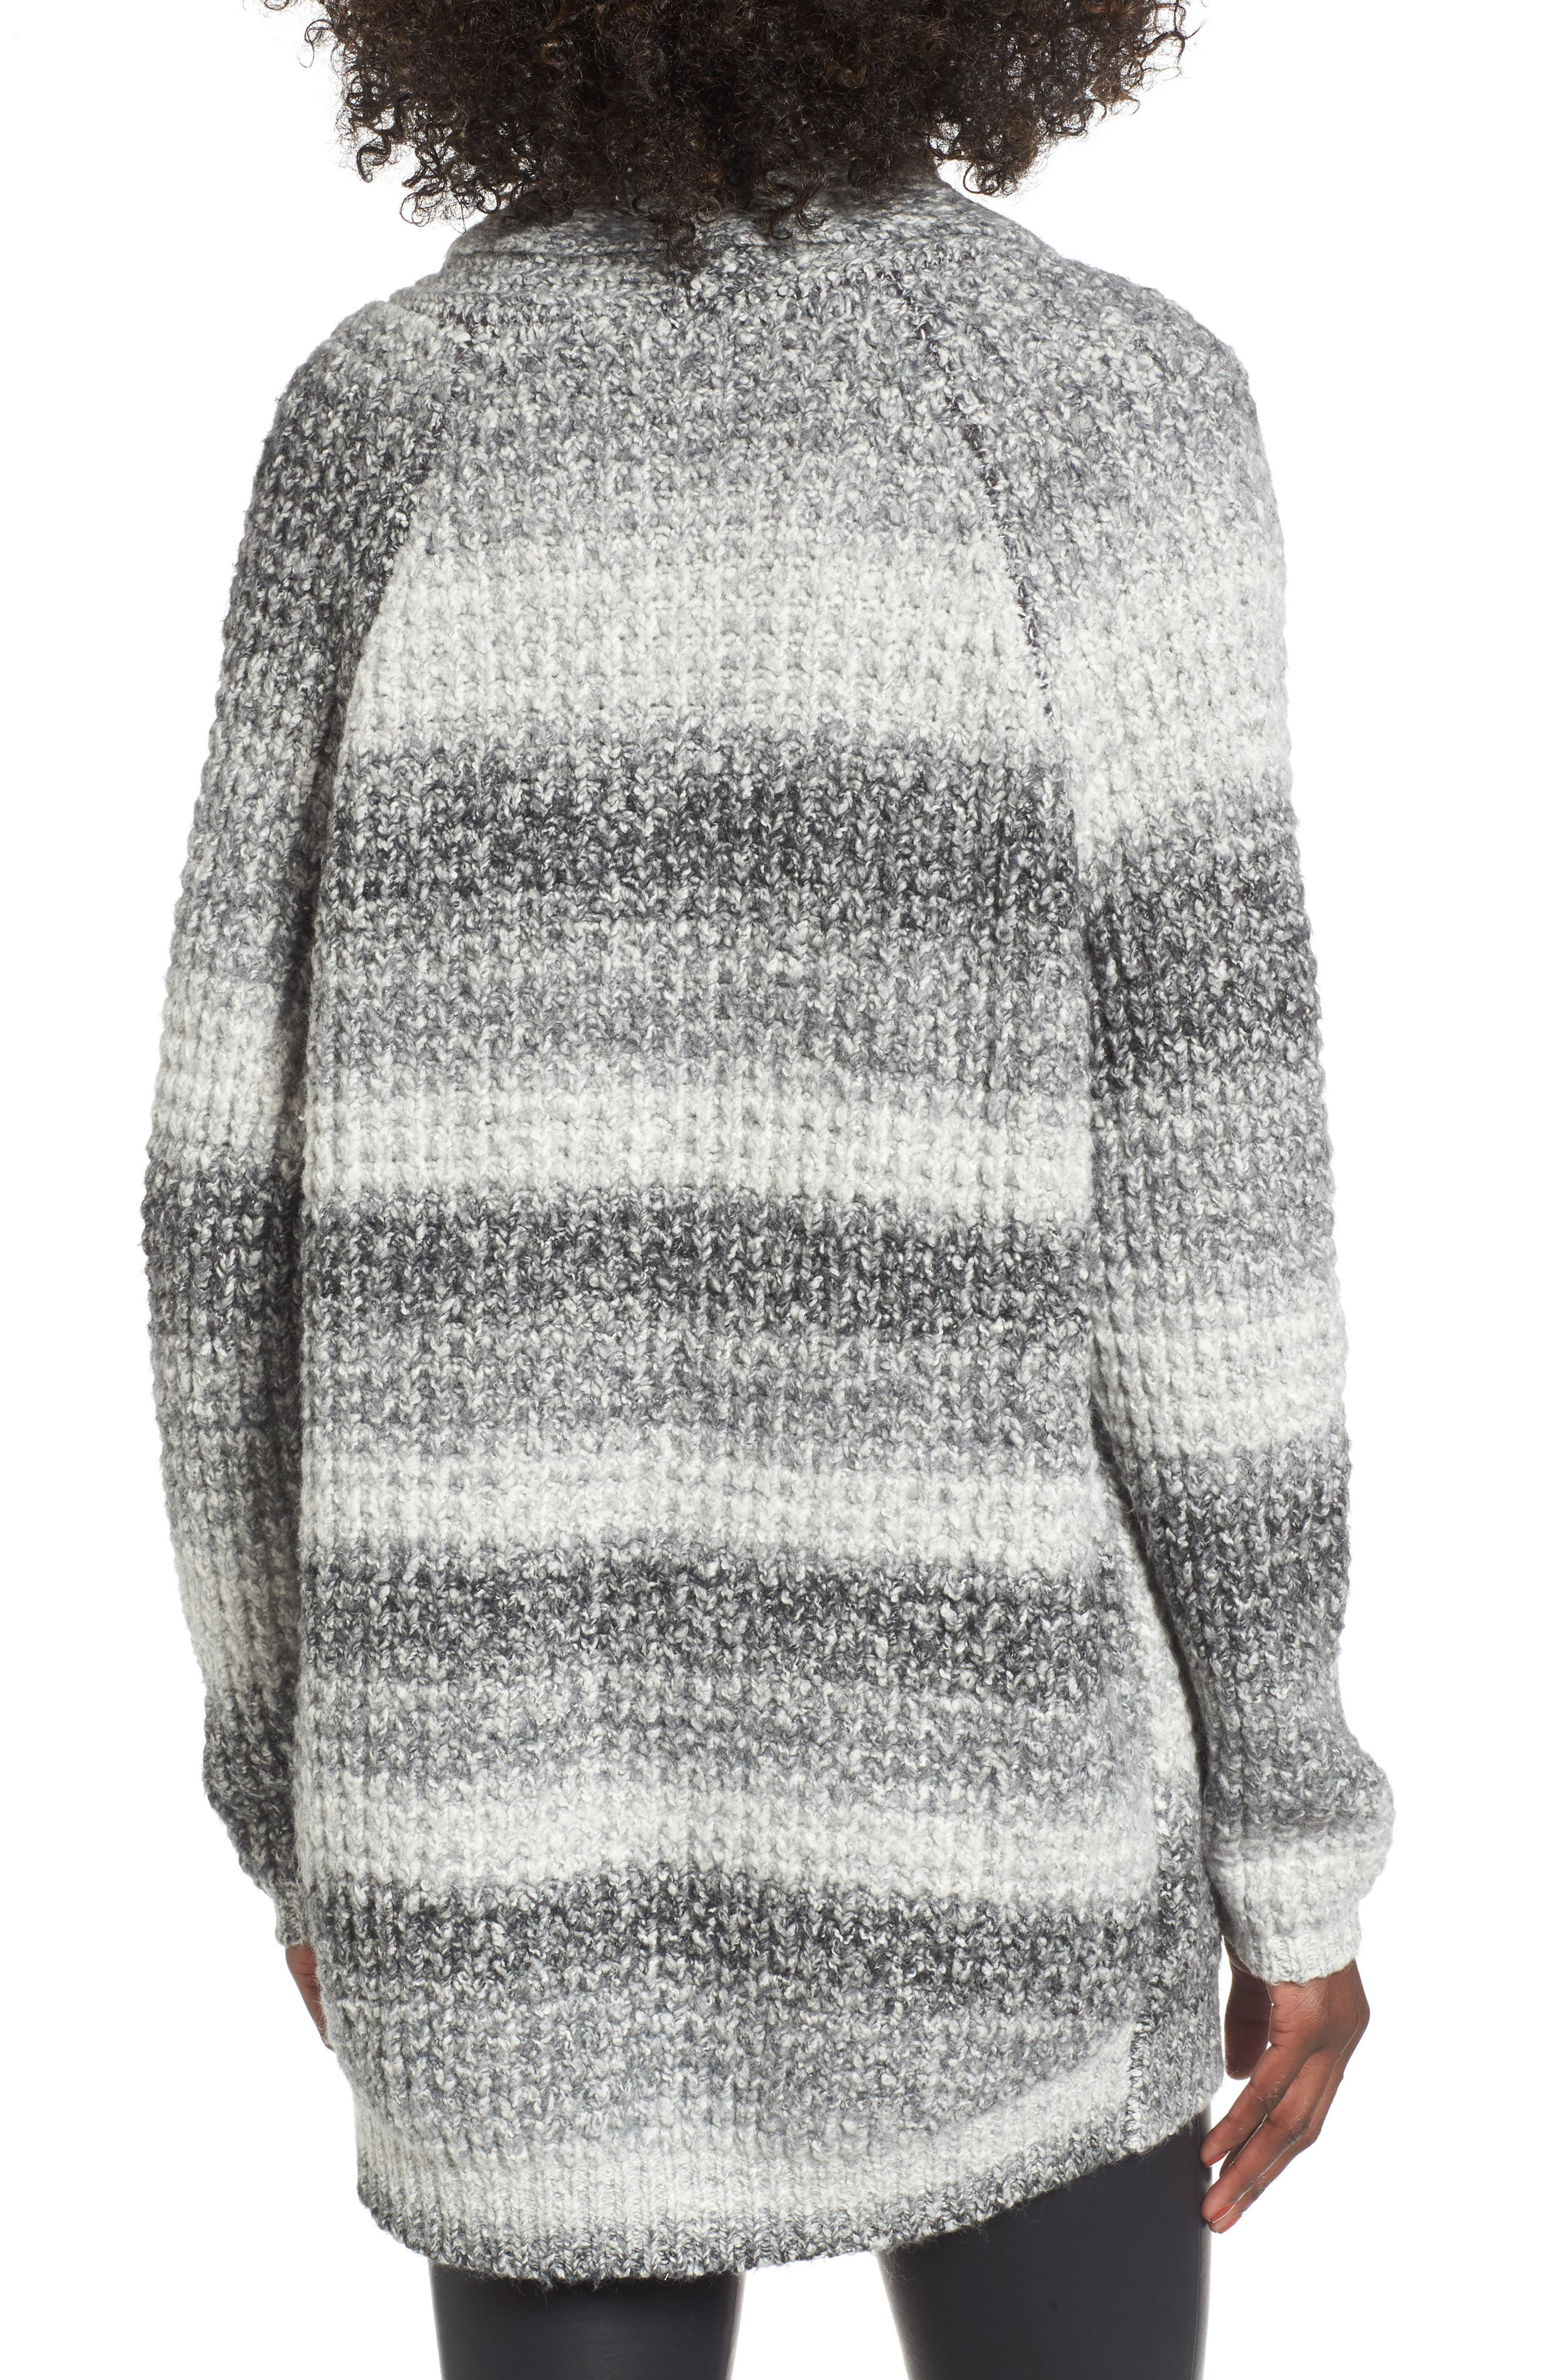 Ombré Cardigan,                             Alternate thumbnail 2, color,                             Grey Cloudy Ombre